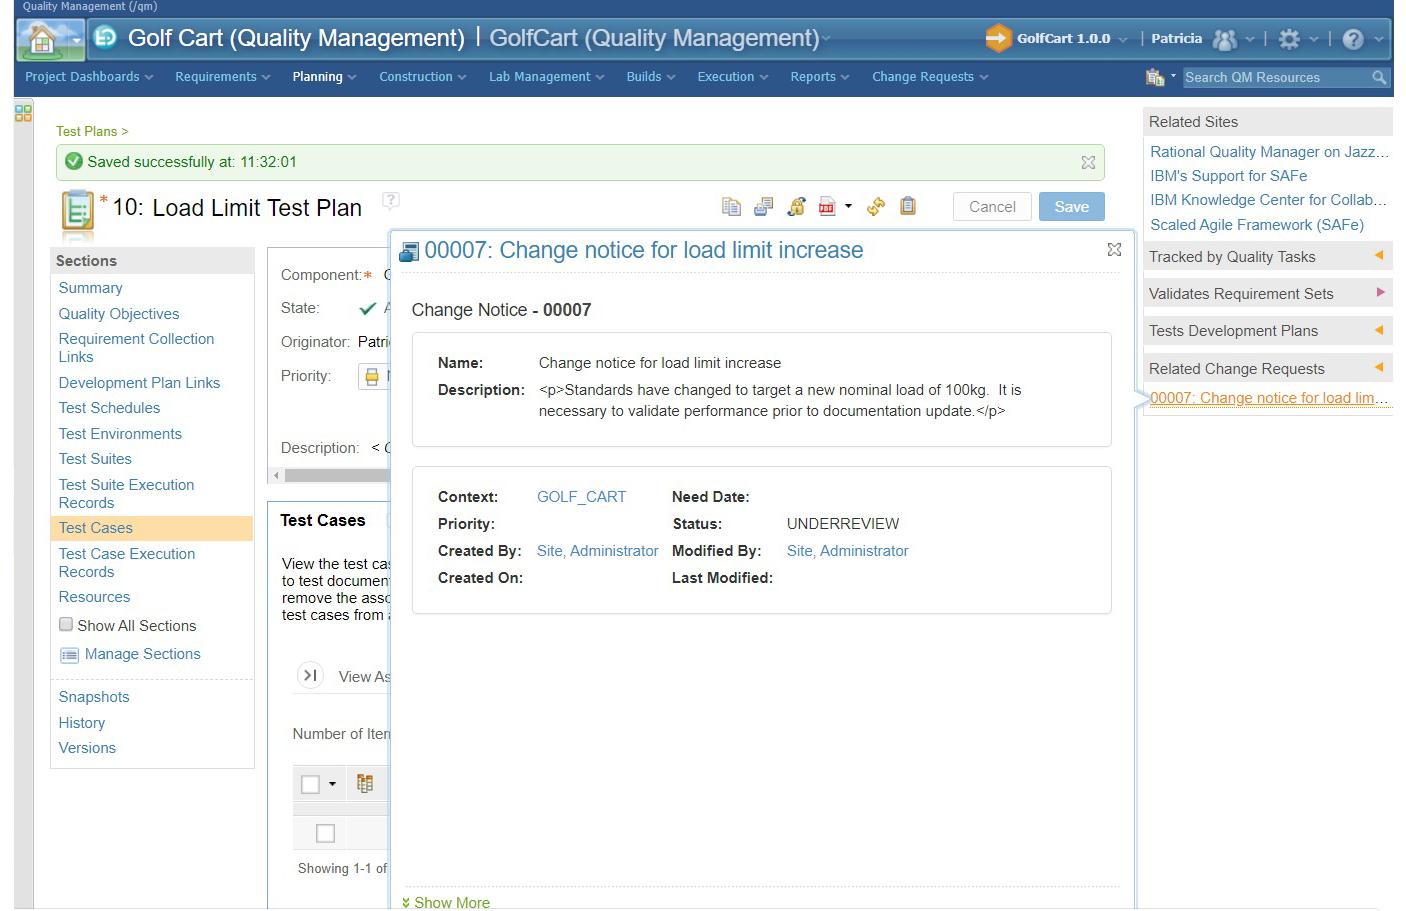 Integrate PTC Windchill with Quality Management for Test Plan To Change Notice in PTC Windchill.